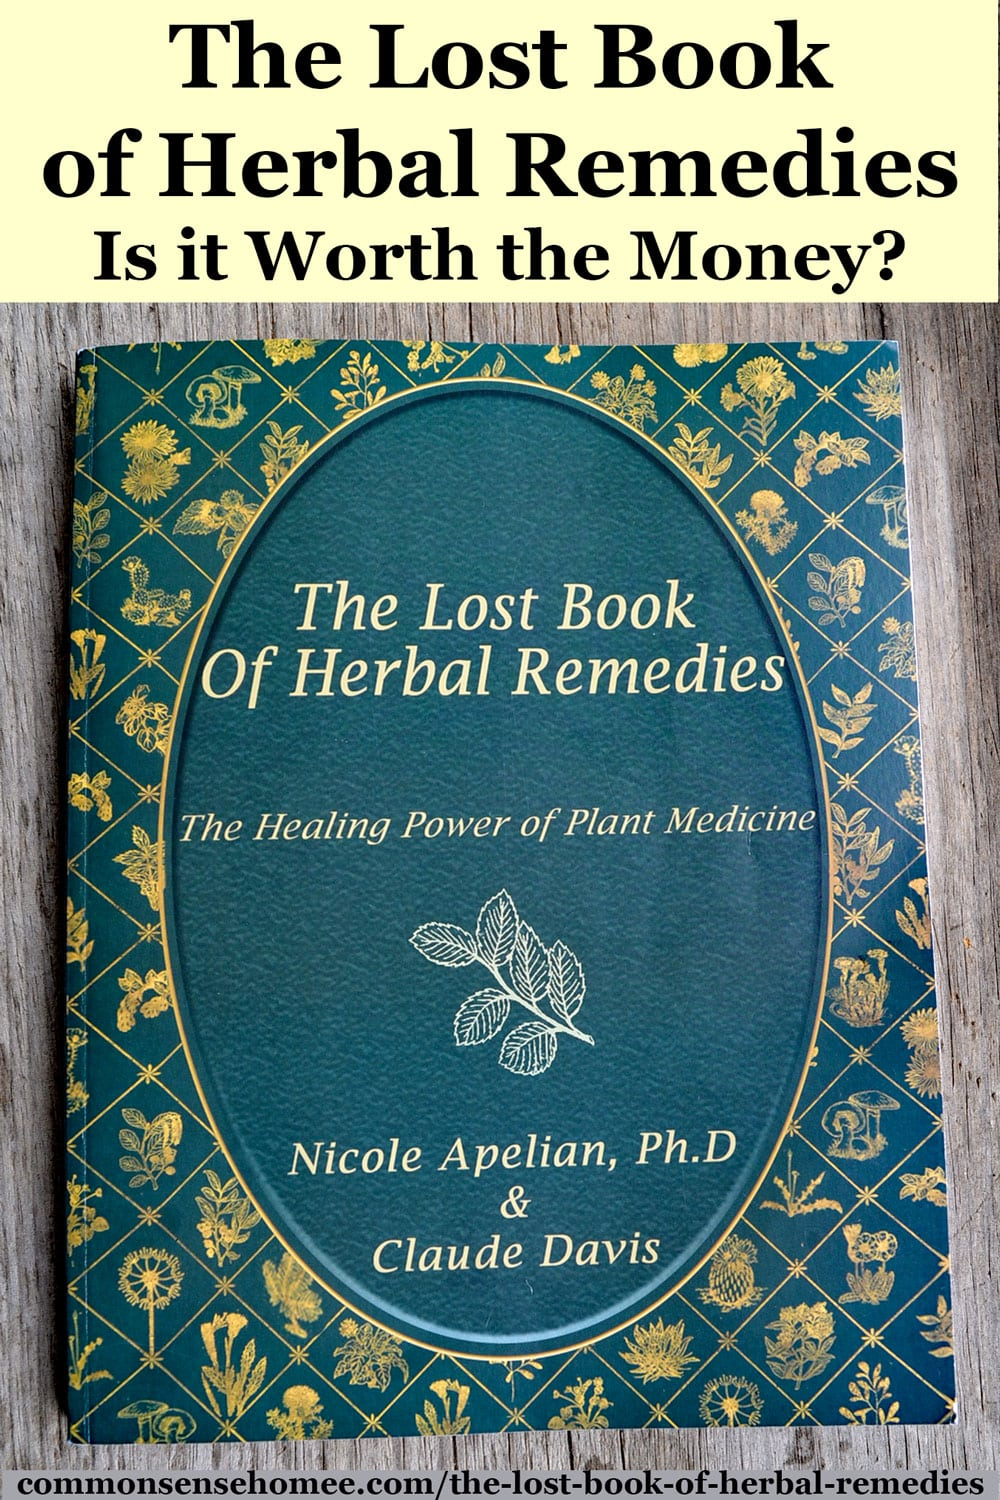 The Lost Book of Herbal Remedies Review - Worth the Money?